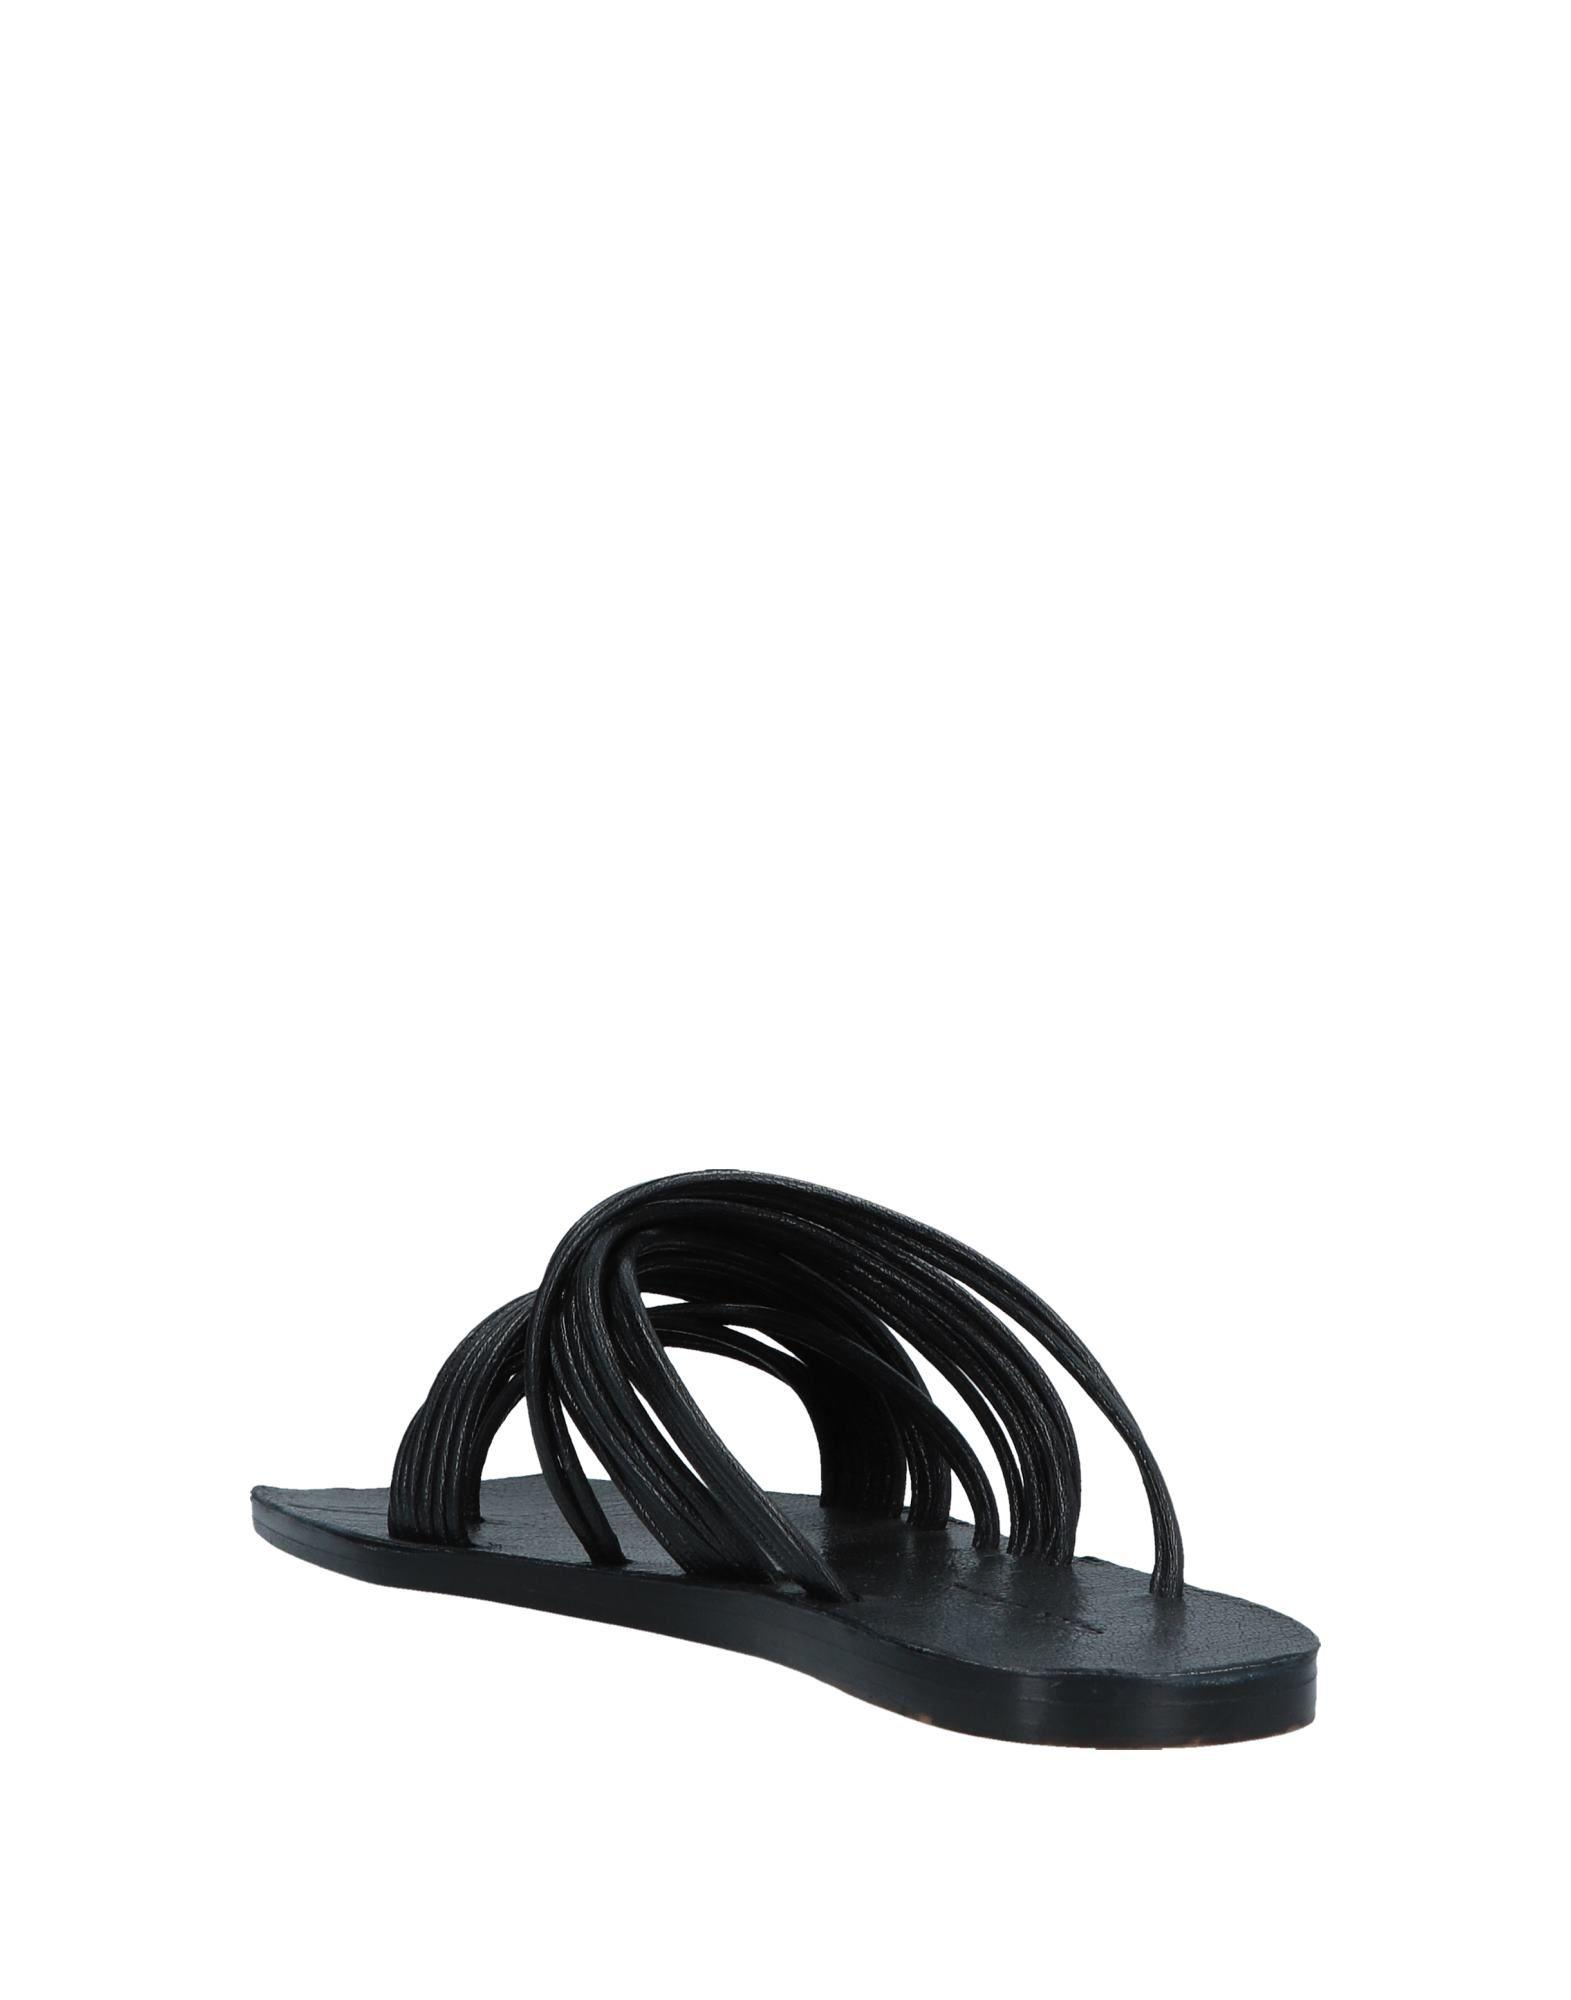 c3a237e914d7 Lyst - Rick Owens Toe Post Sandal in Black